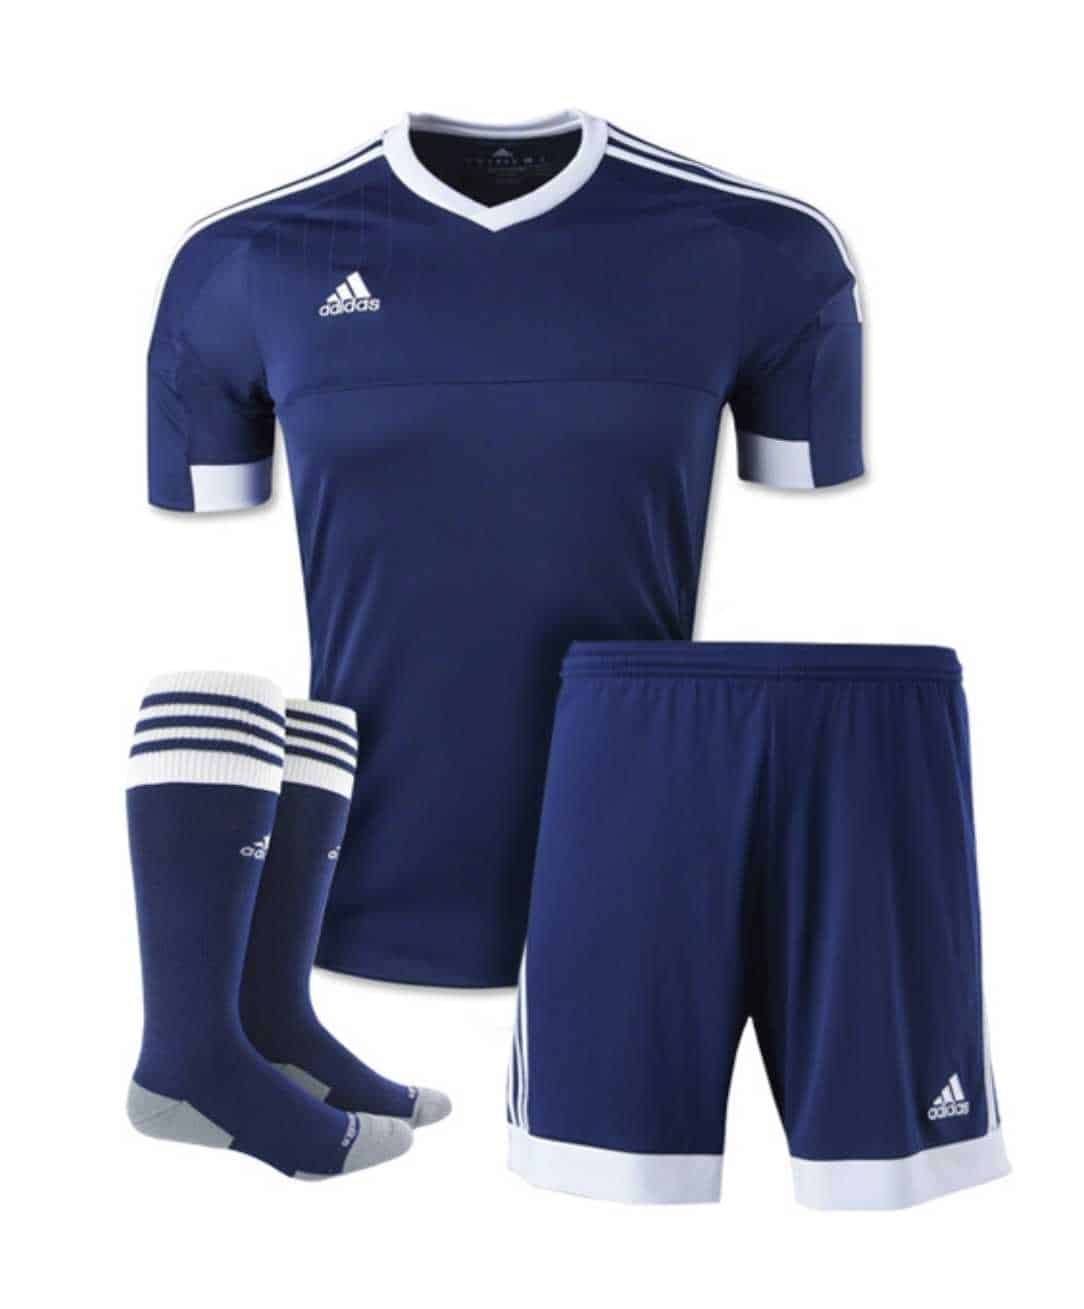 adidas soccer clothes shirts and shorts